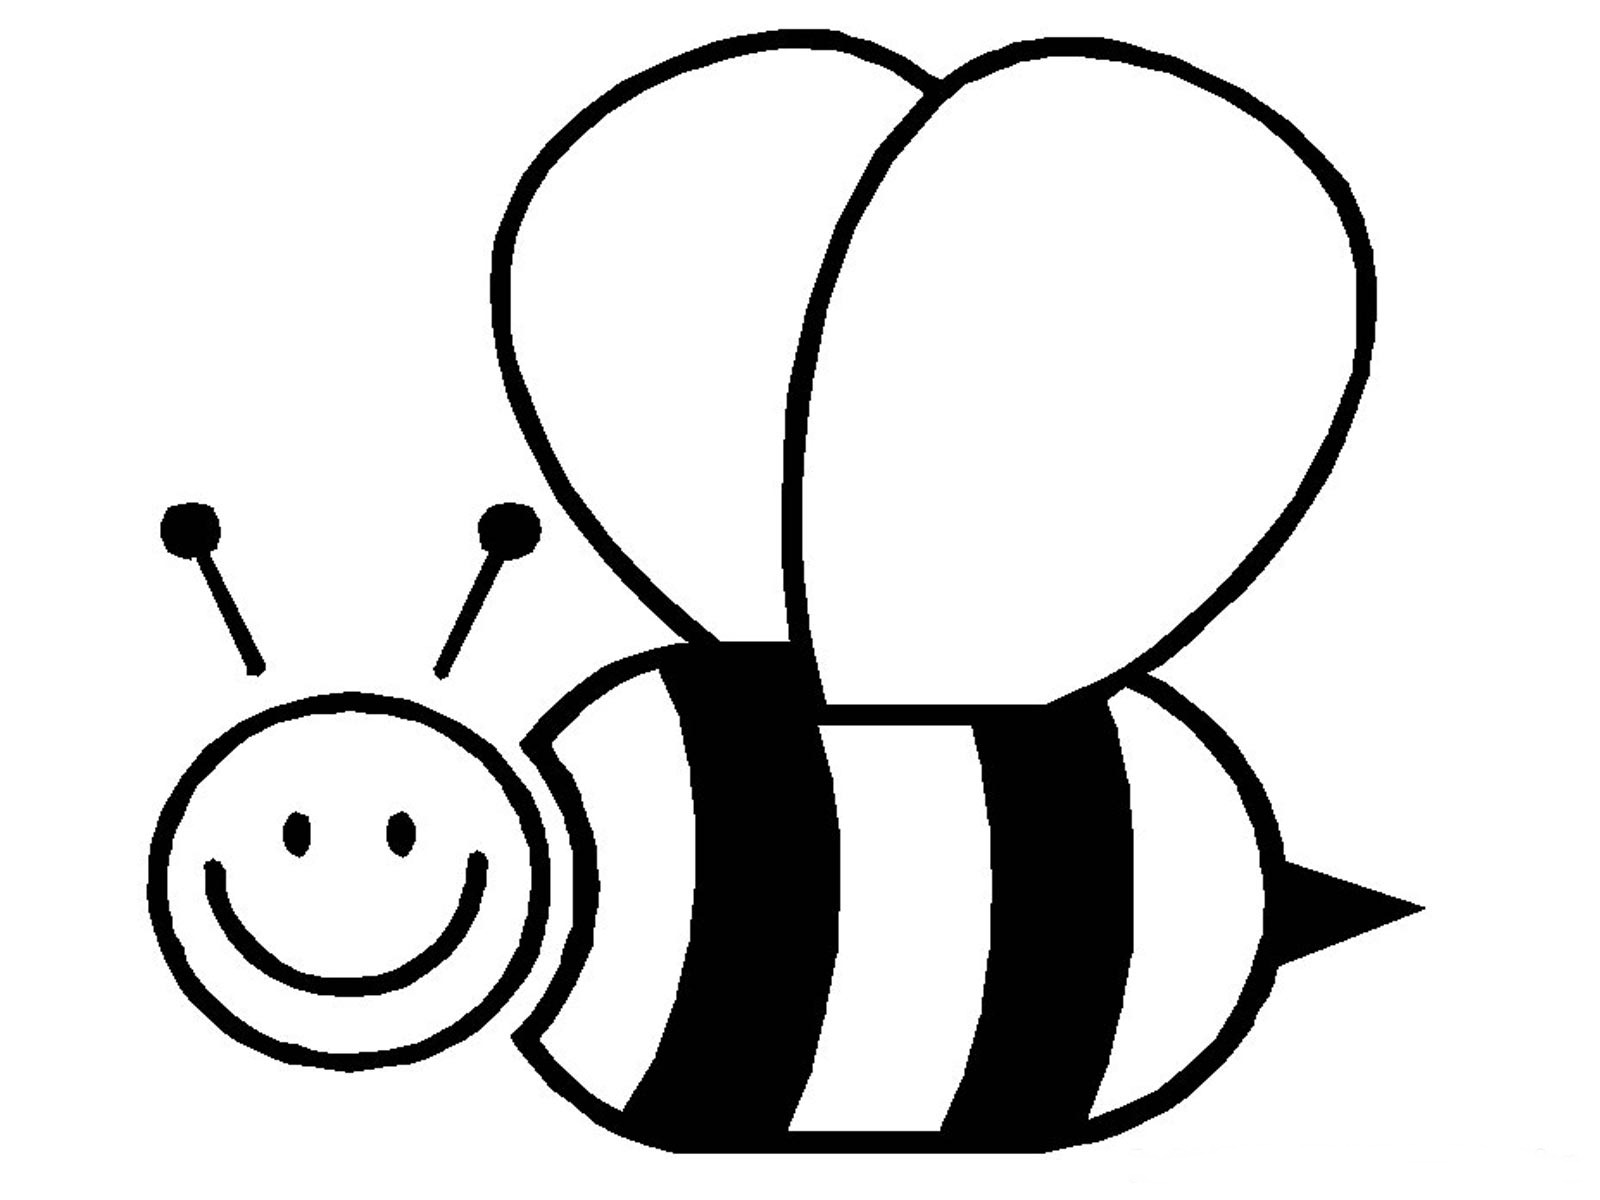 bumble bee coloring page bumblebee coloring pages cartoon free printable coloring page bee bumble coloring